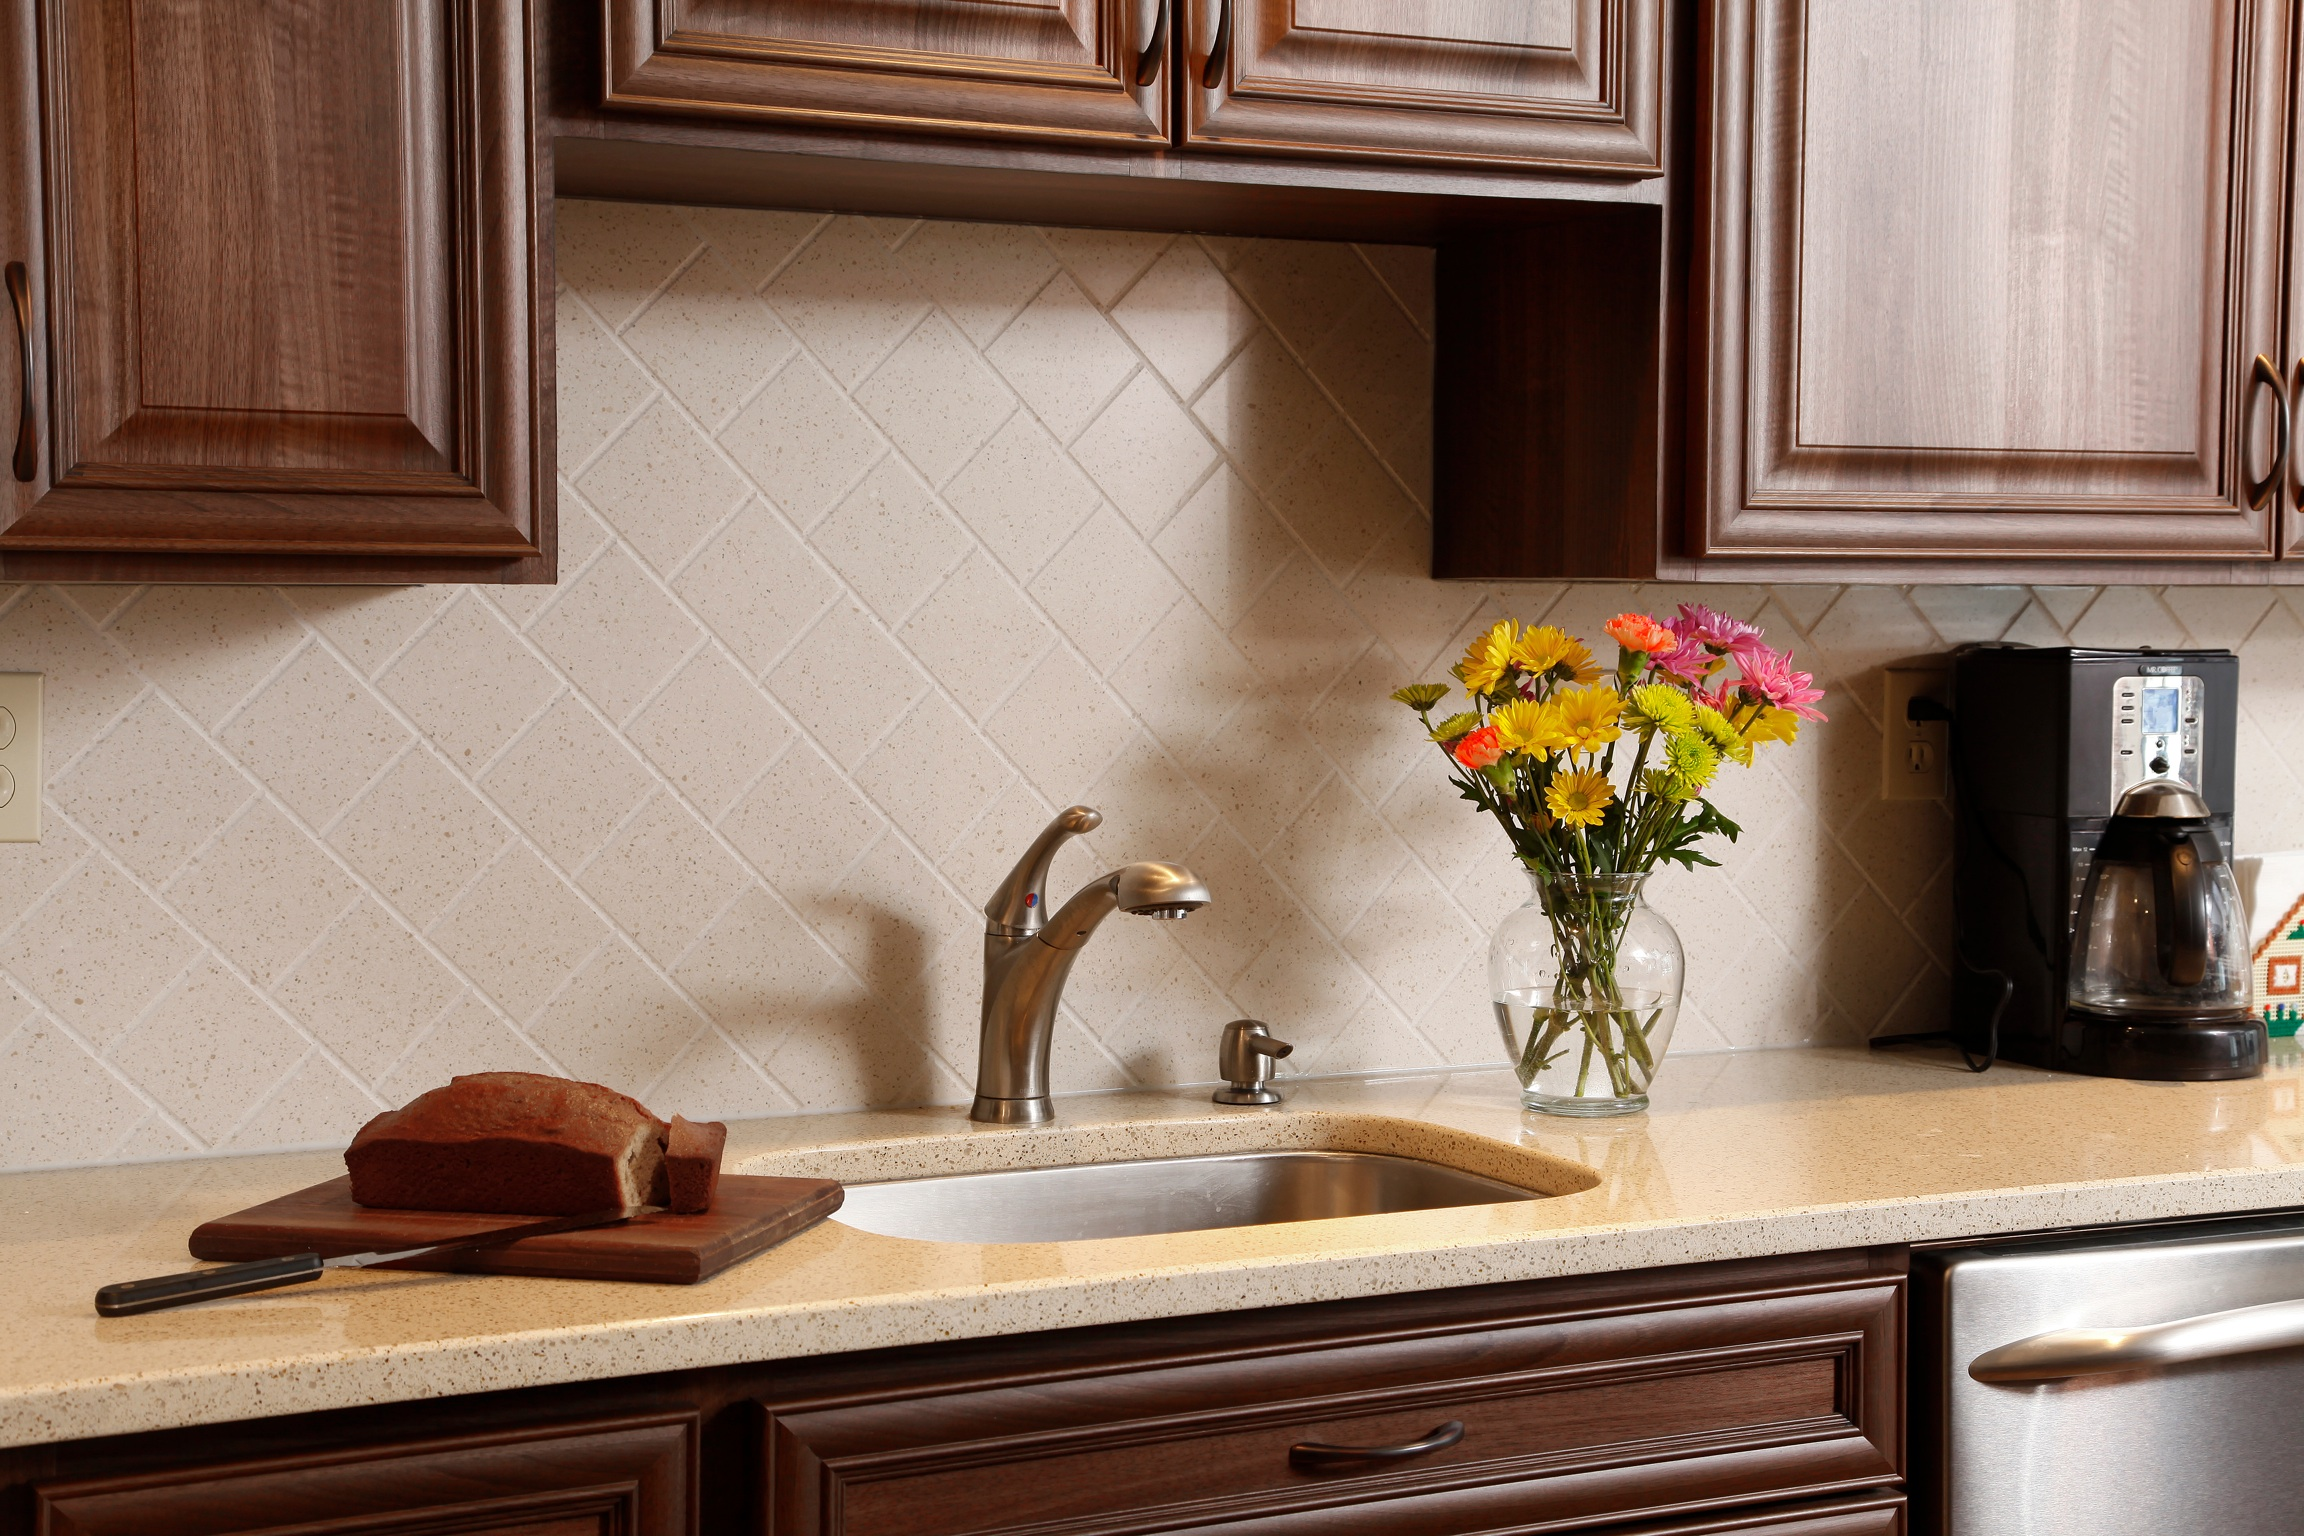 kitchen with full, routed Corian backsplash